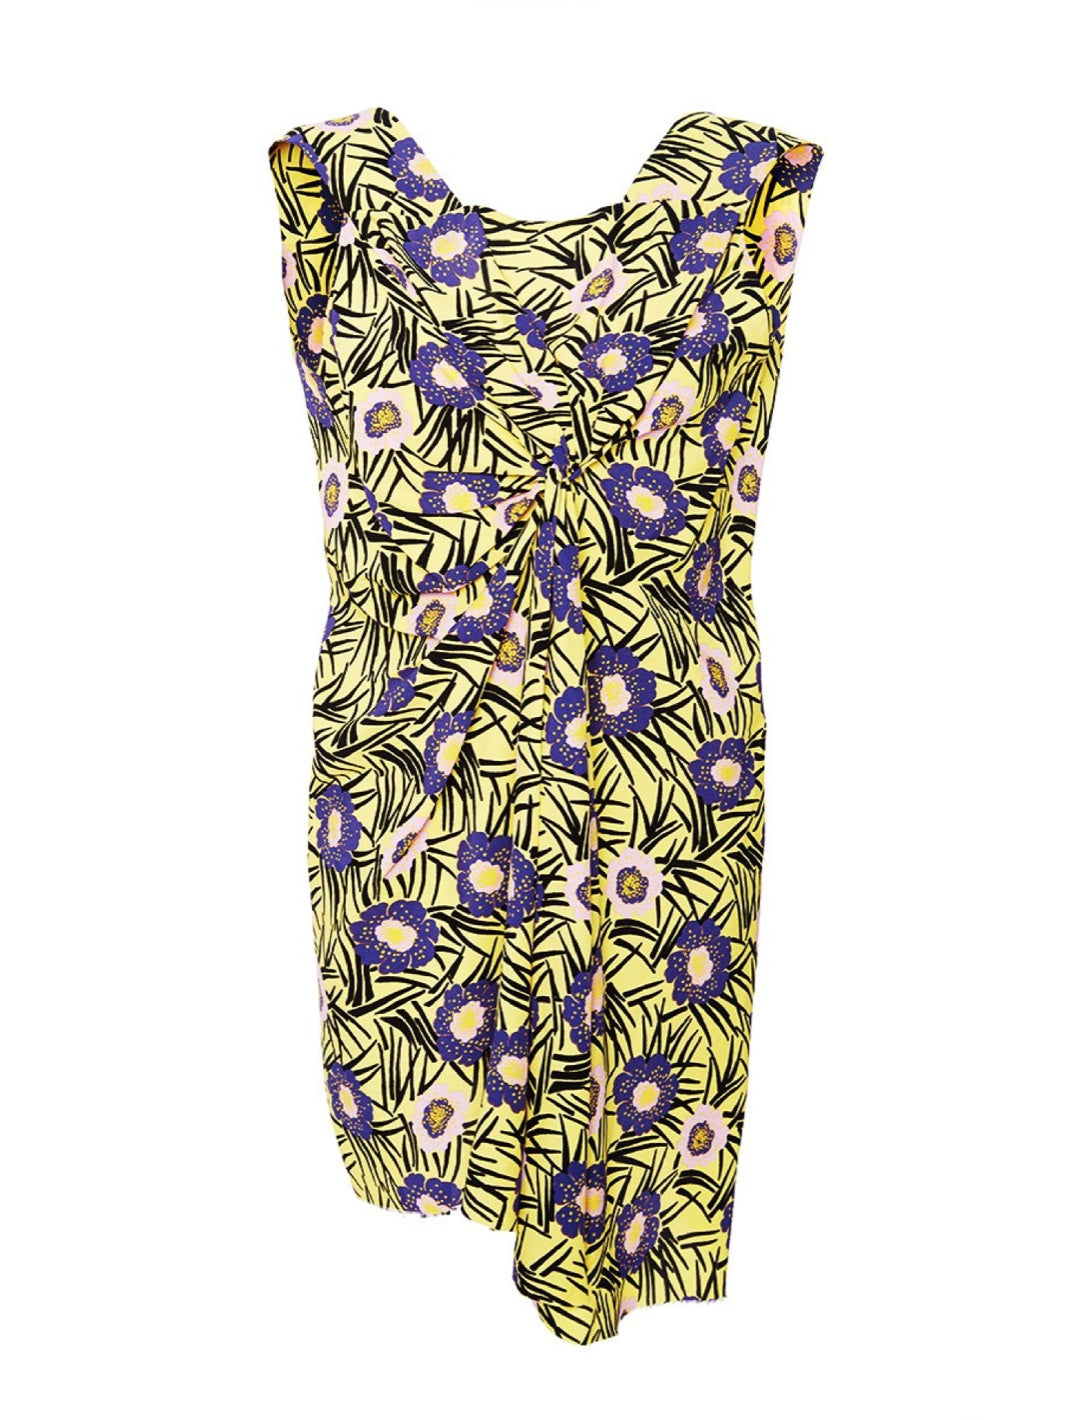 Floral Gathered Tank Top - The Bobby Boga